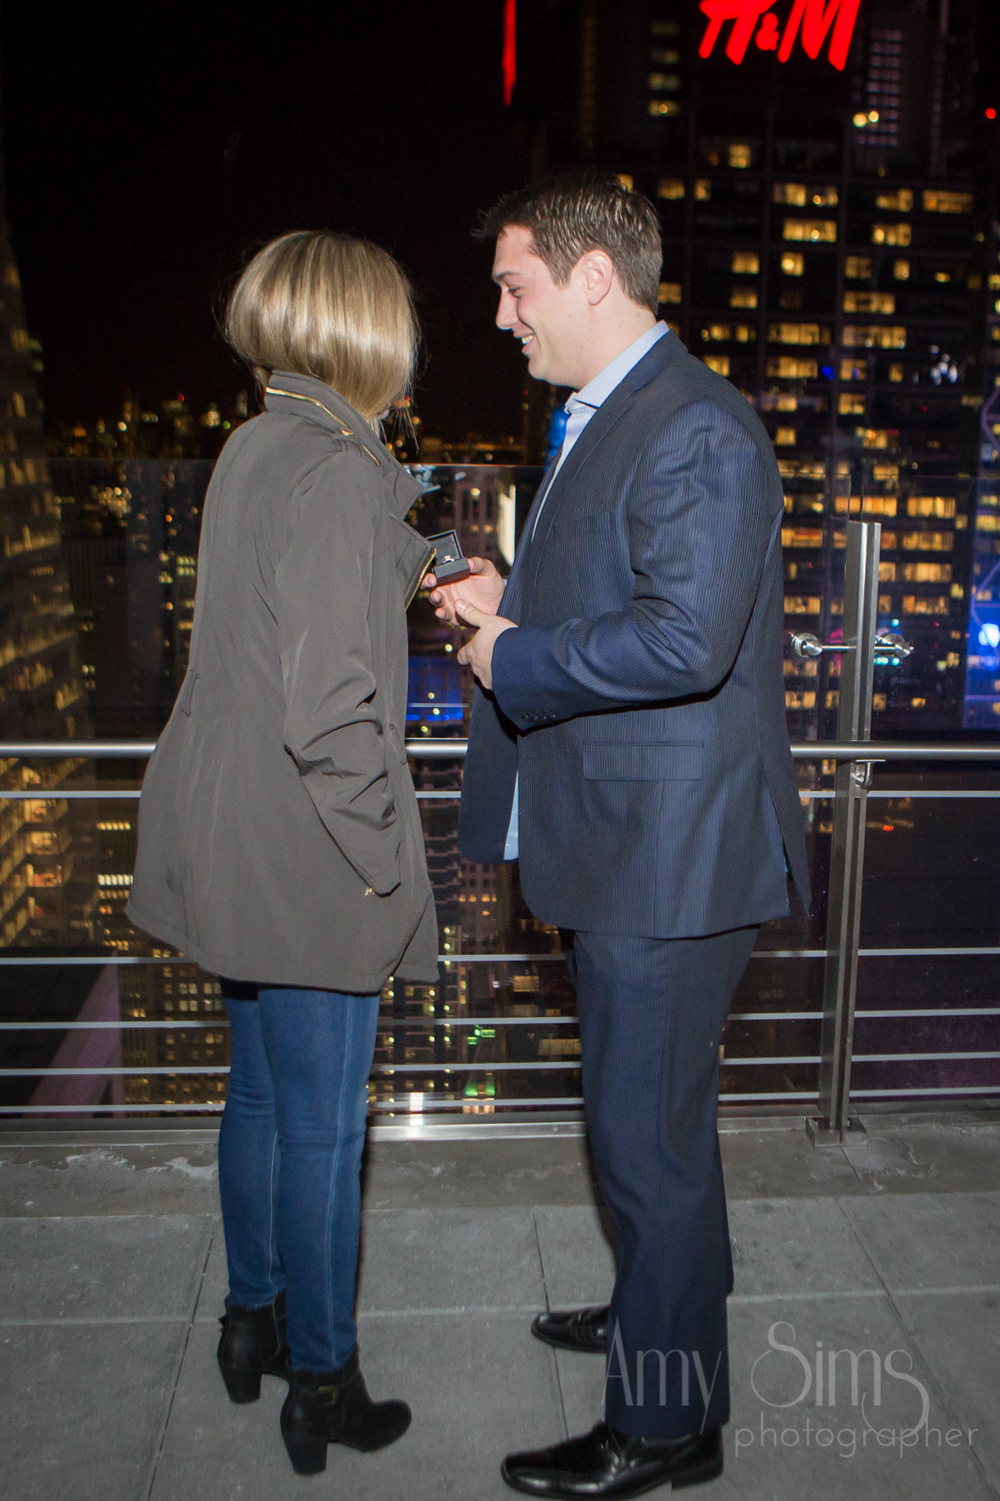 Matt & Taylor Proposal || Bar 54 Hyatt || nyc wedding photographer